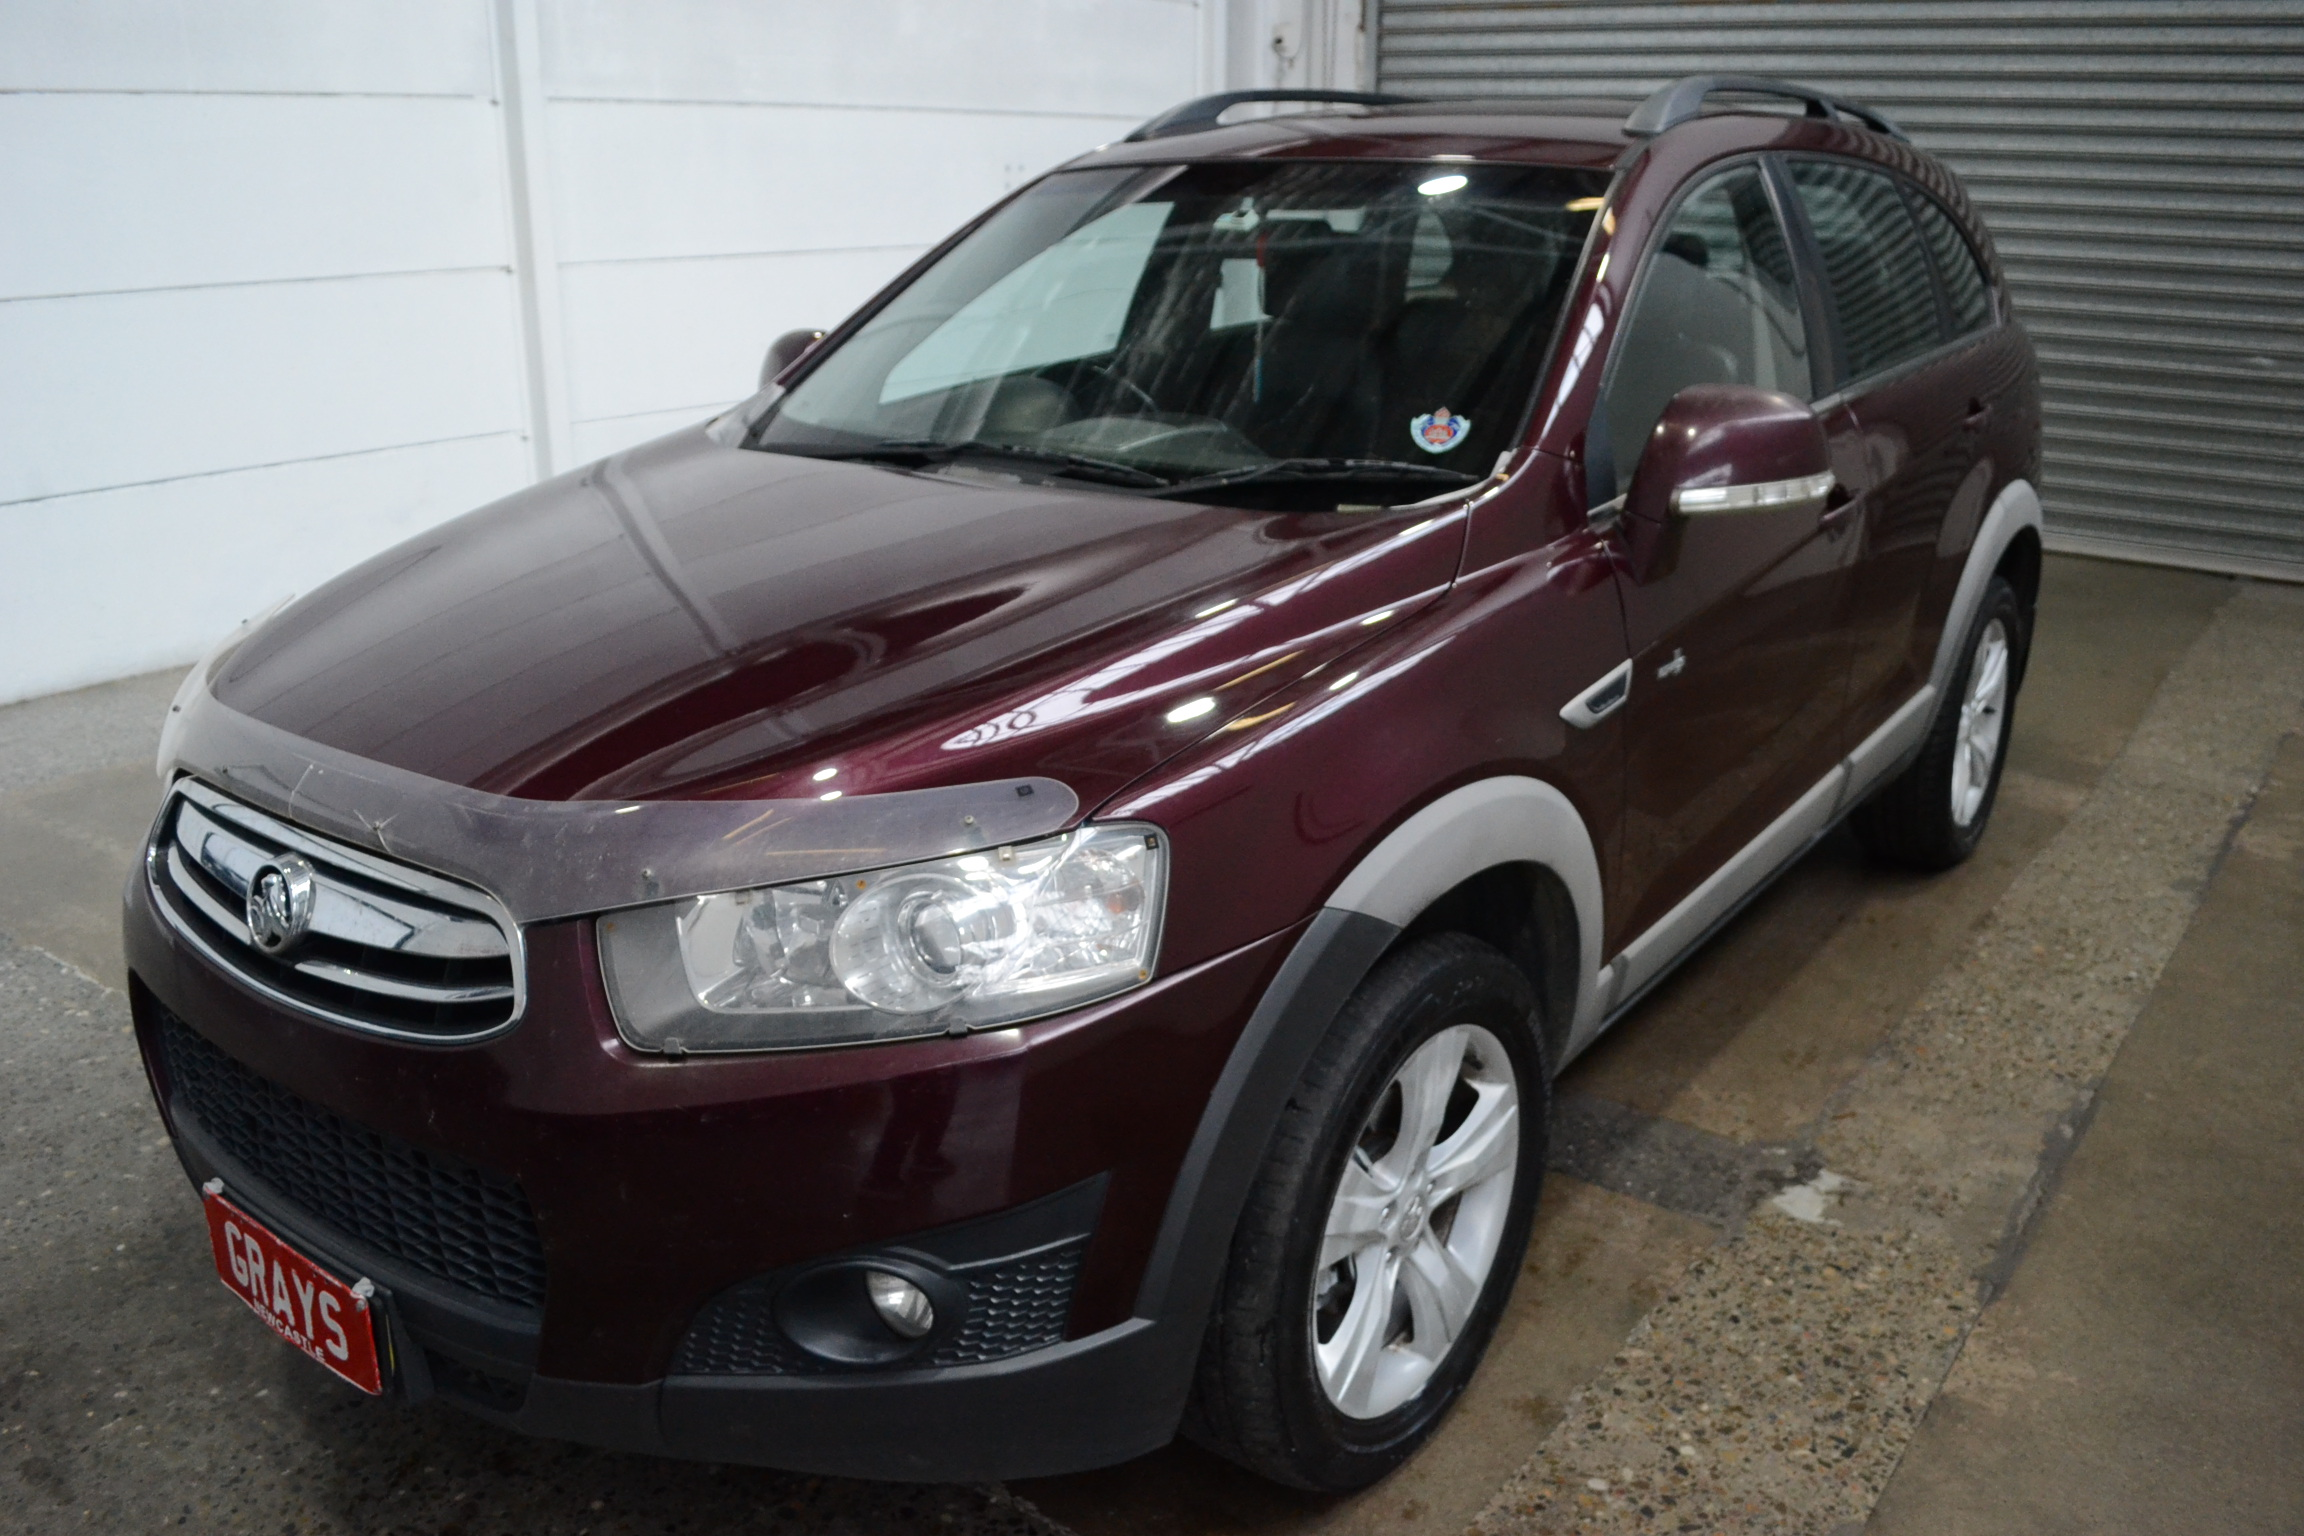 2011 Holden Captiva 7 CX AWD CG II Automatic 7 Seats Wagon